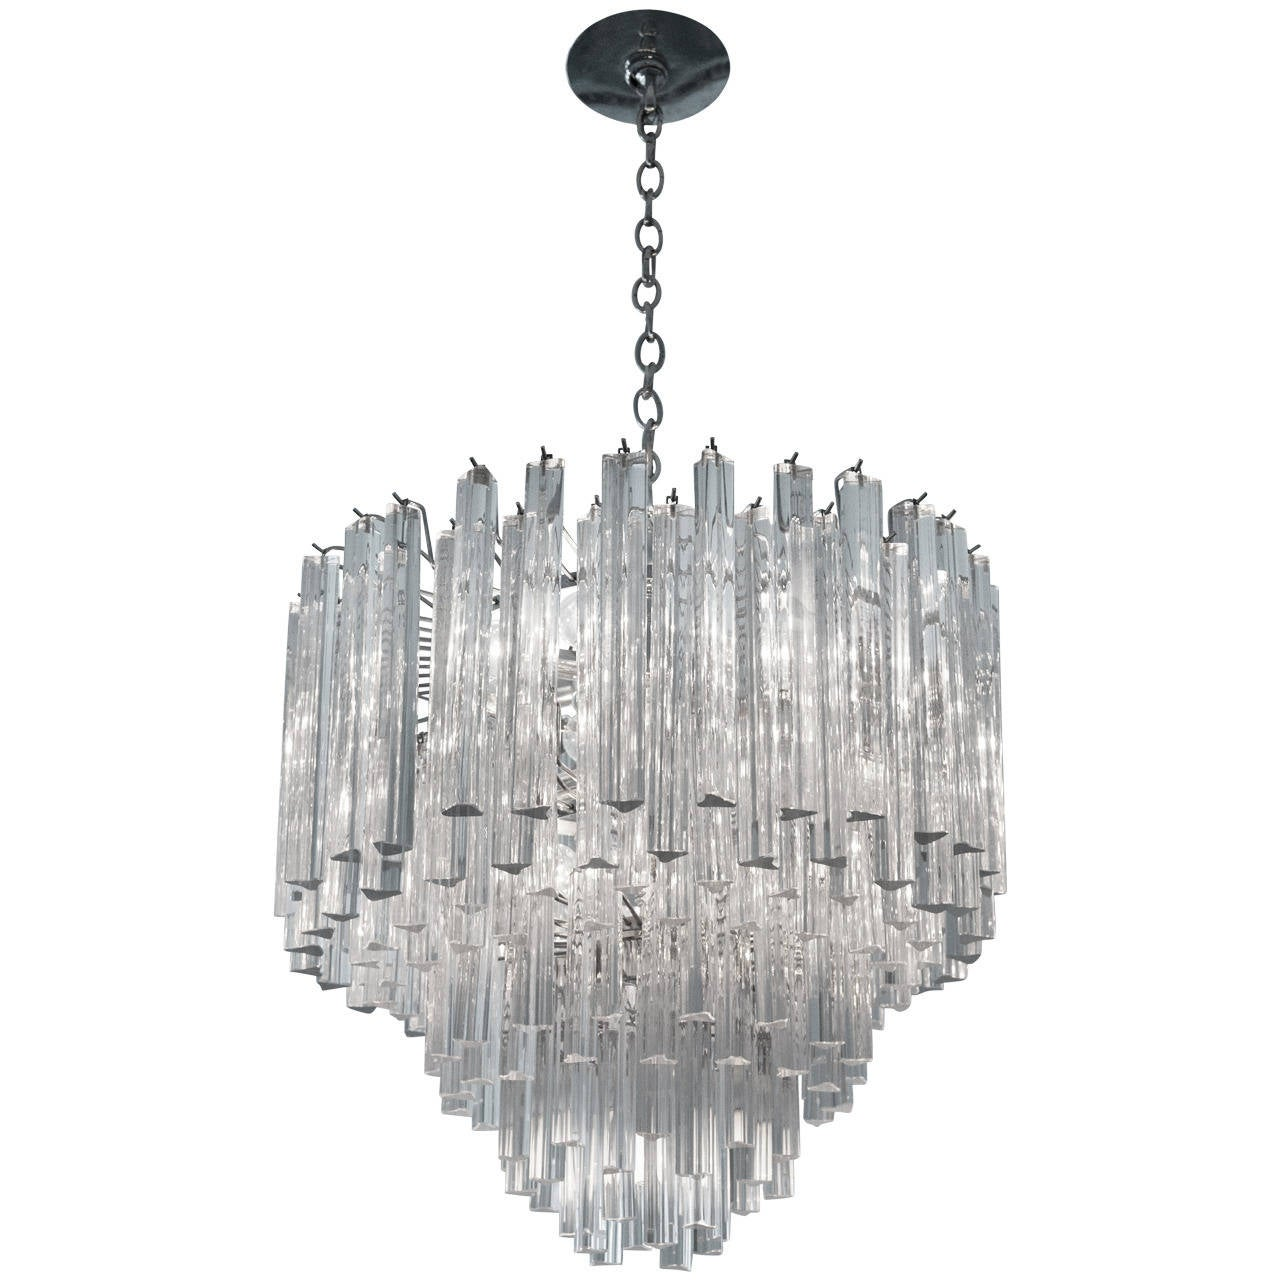 Modern italian crystal venini chandelier by camer at 1stdibs modern italian crystal venini chandelier by camer 1 arubaitofo Images